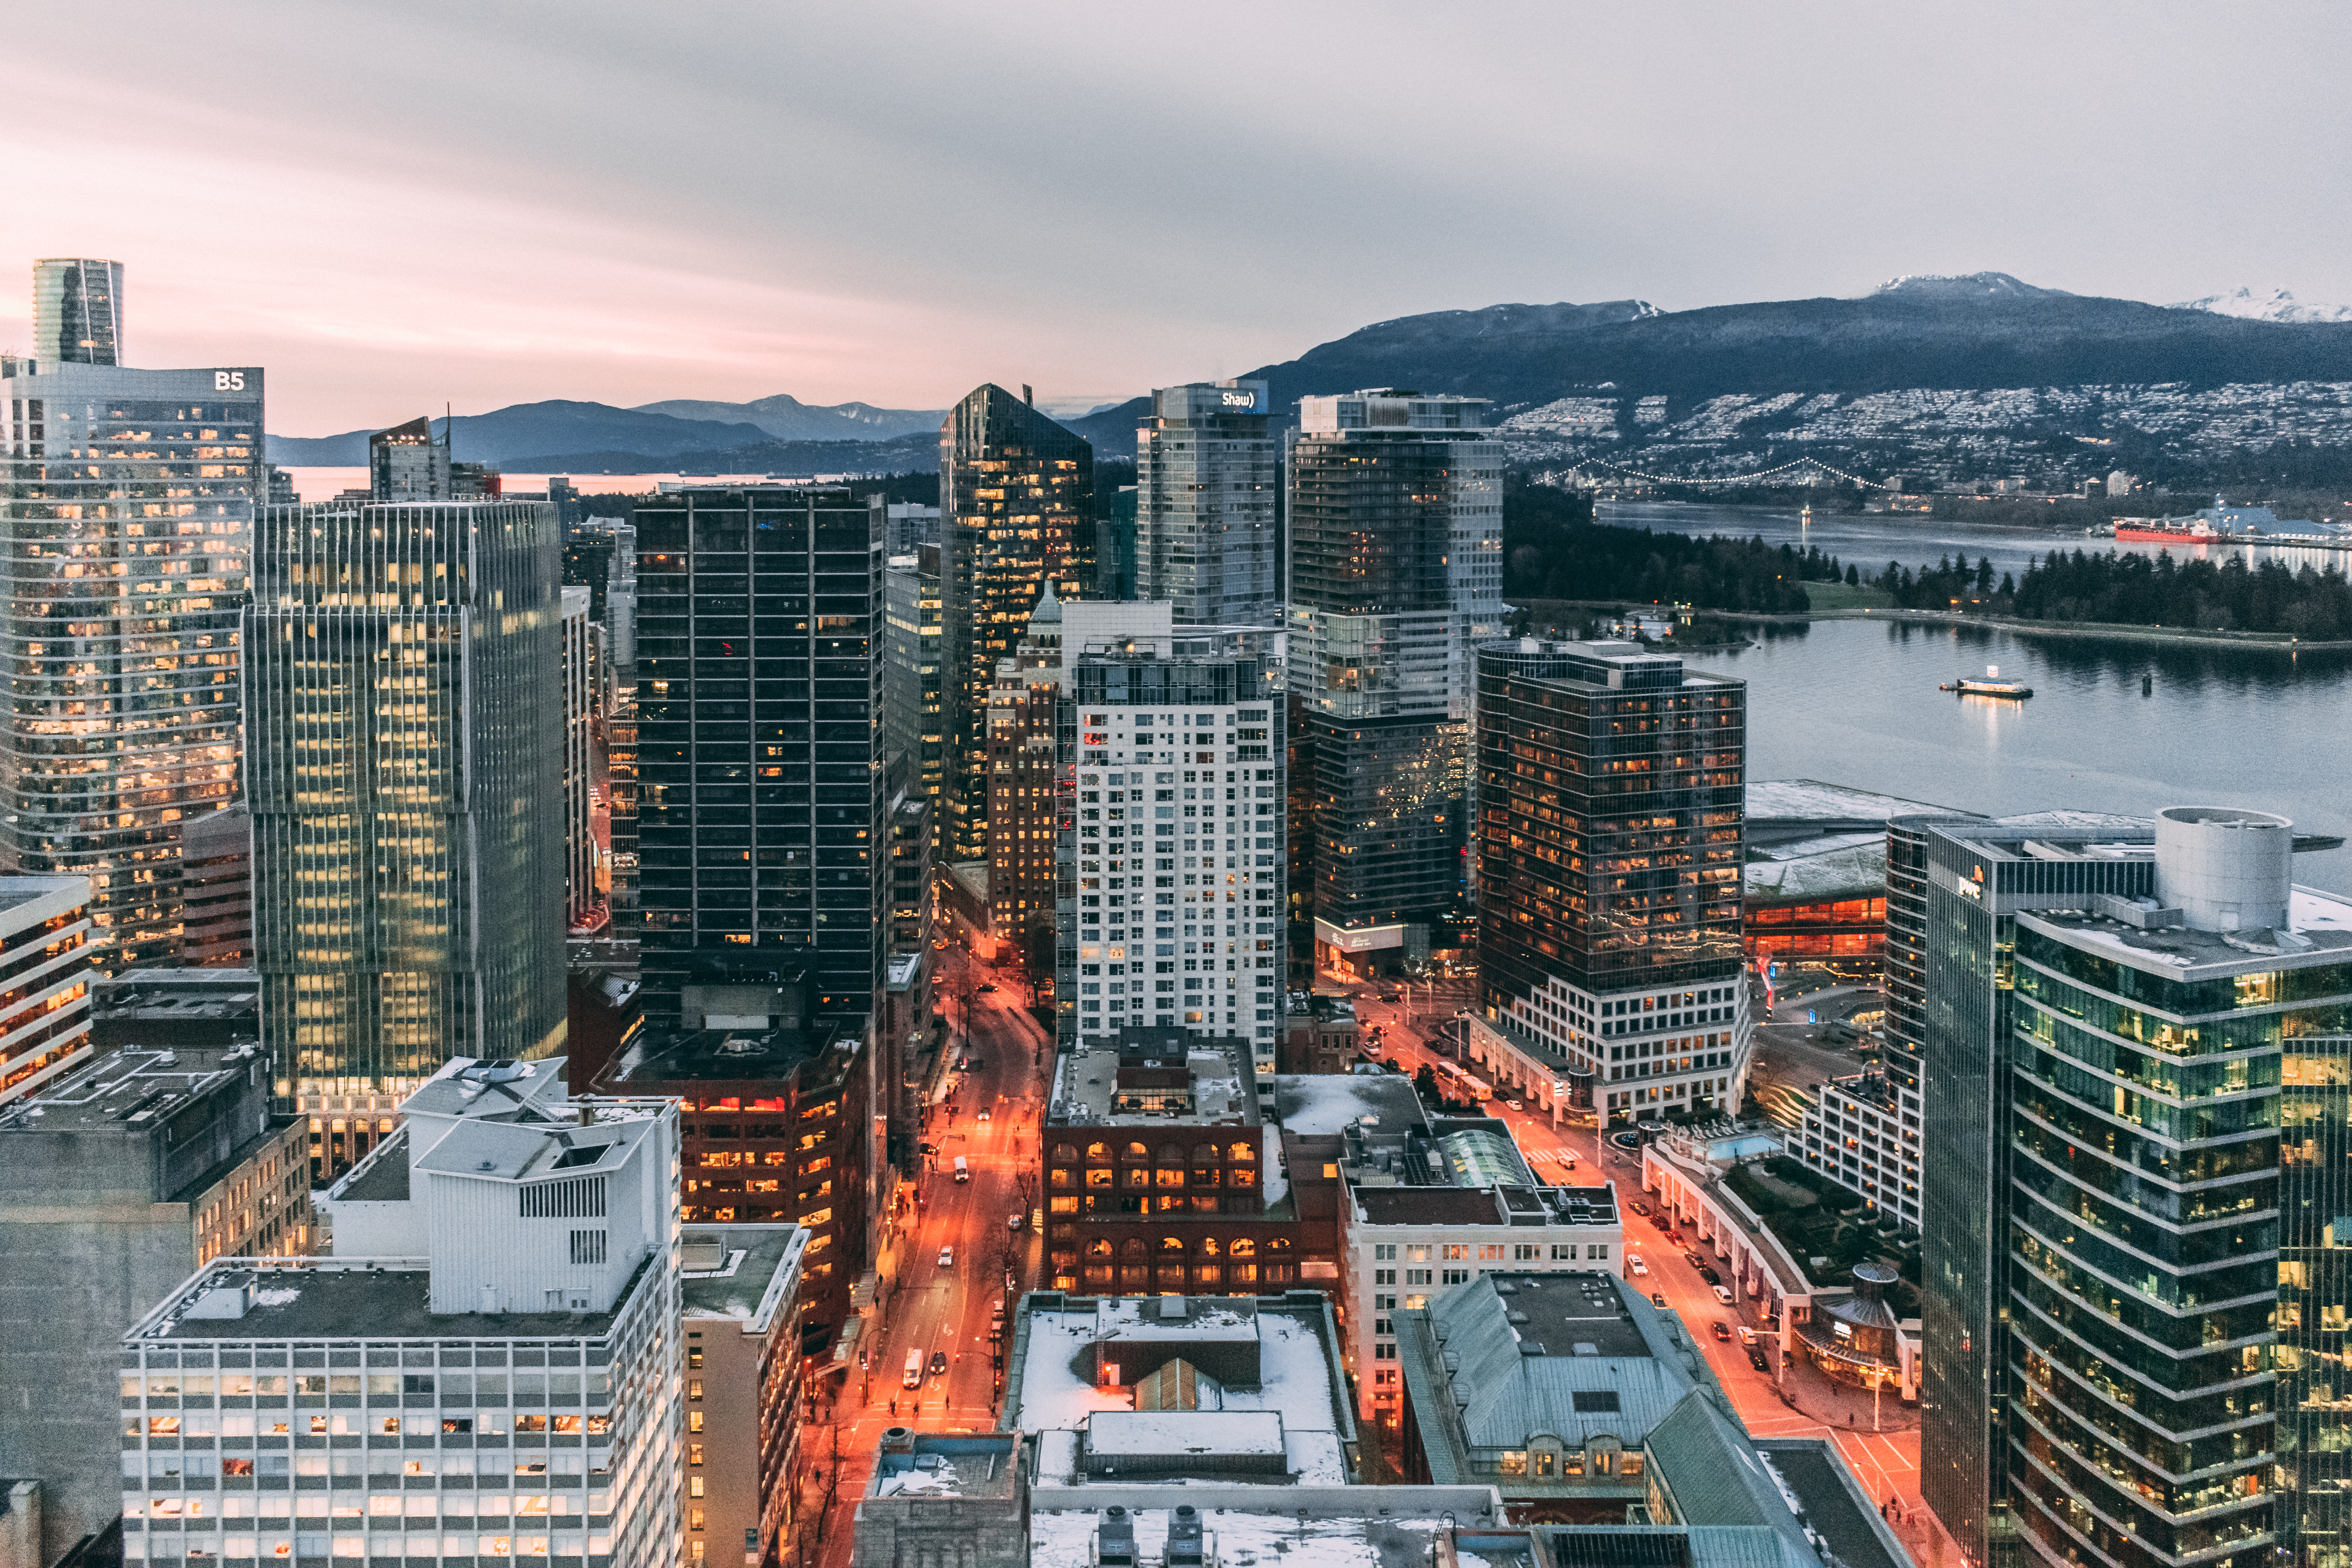 VanCity is ranked among the best cities to live in. It's obvious, who doesn't like mountains, beaches and a beautiful skyline?